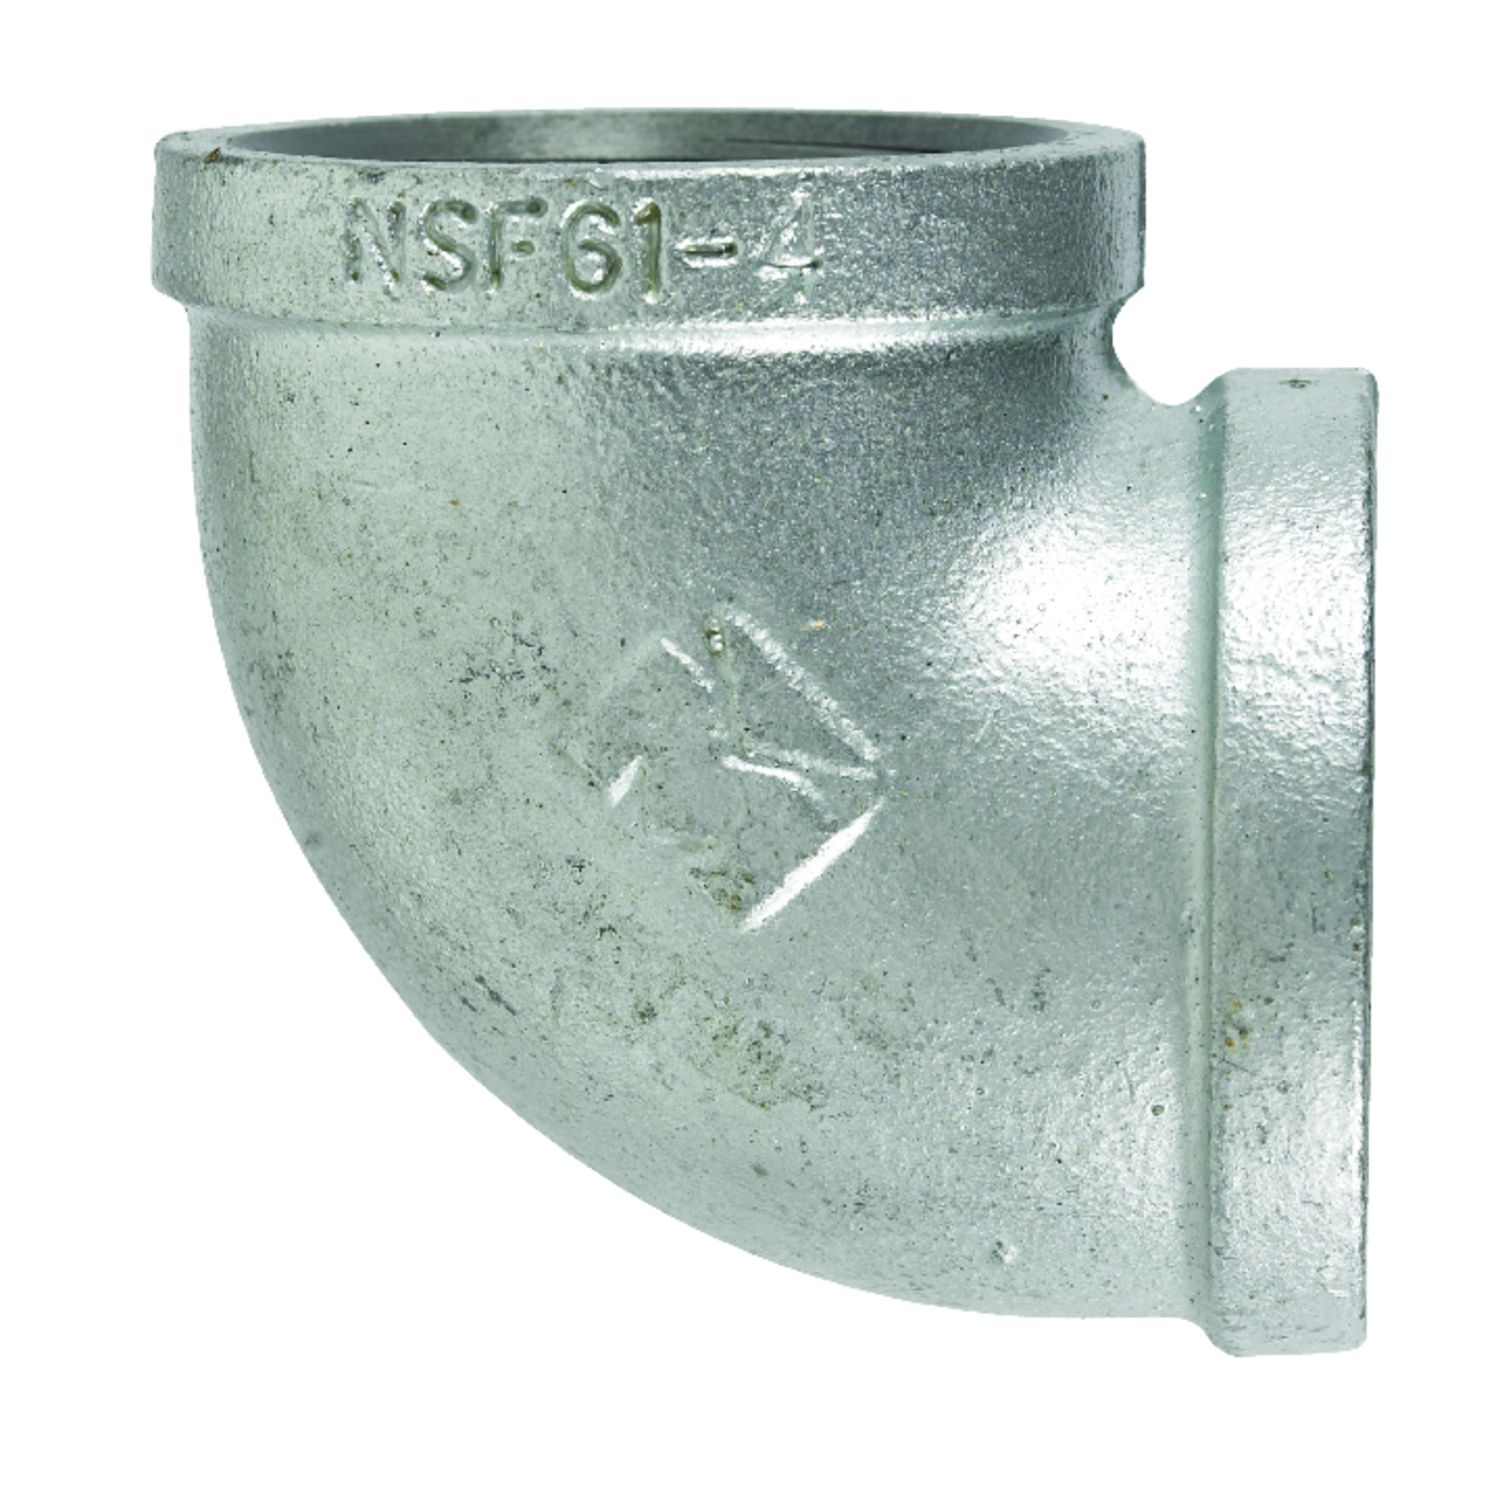 B & K  3/8 in. FPT   x 3/8 in. Dia. FPT  Galvanized  Malleable Iron  Elbow